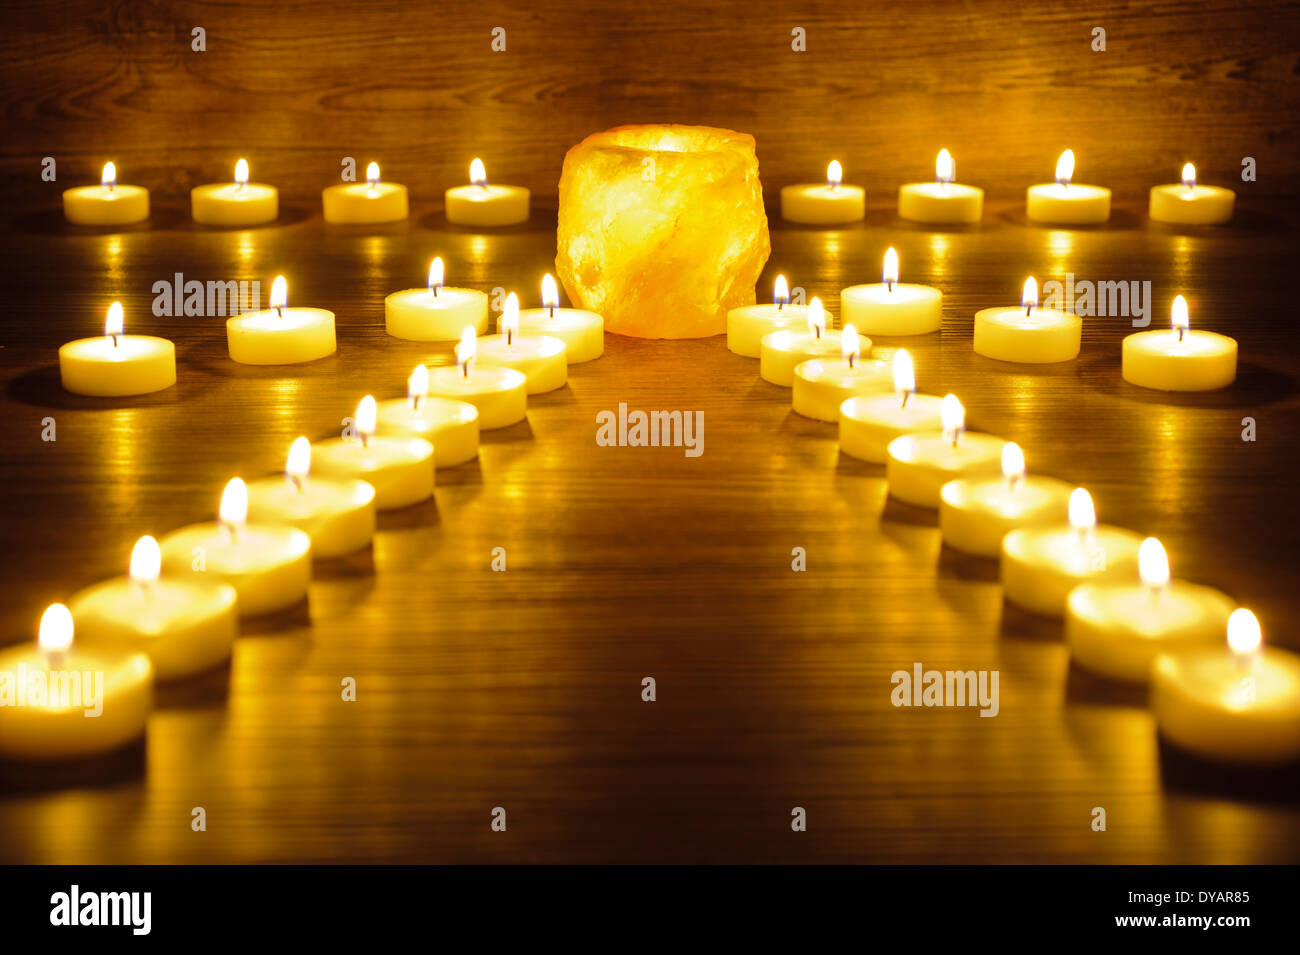 garden of meditation with many candle lights - Stock Image